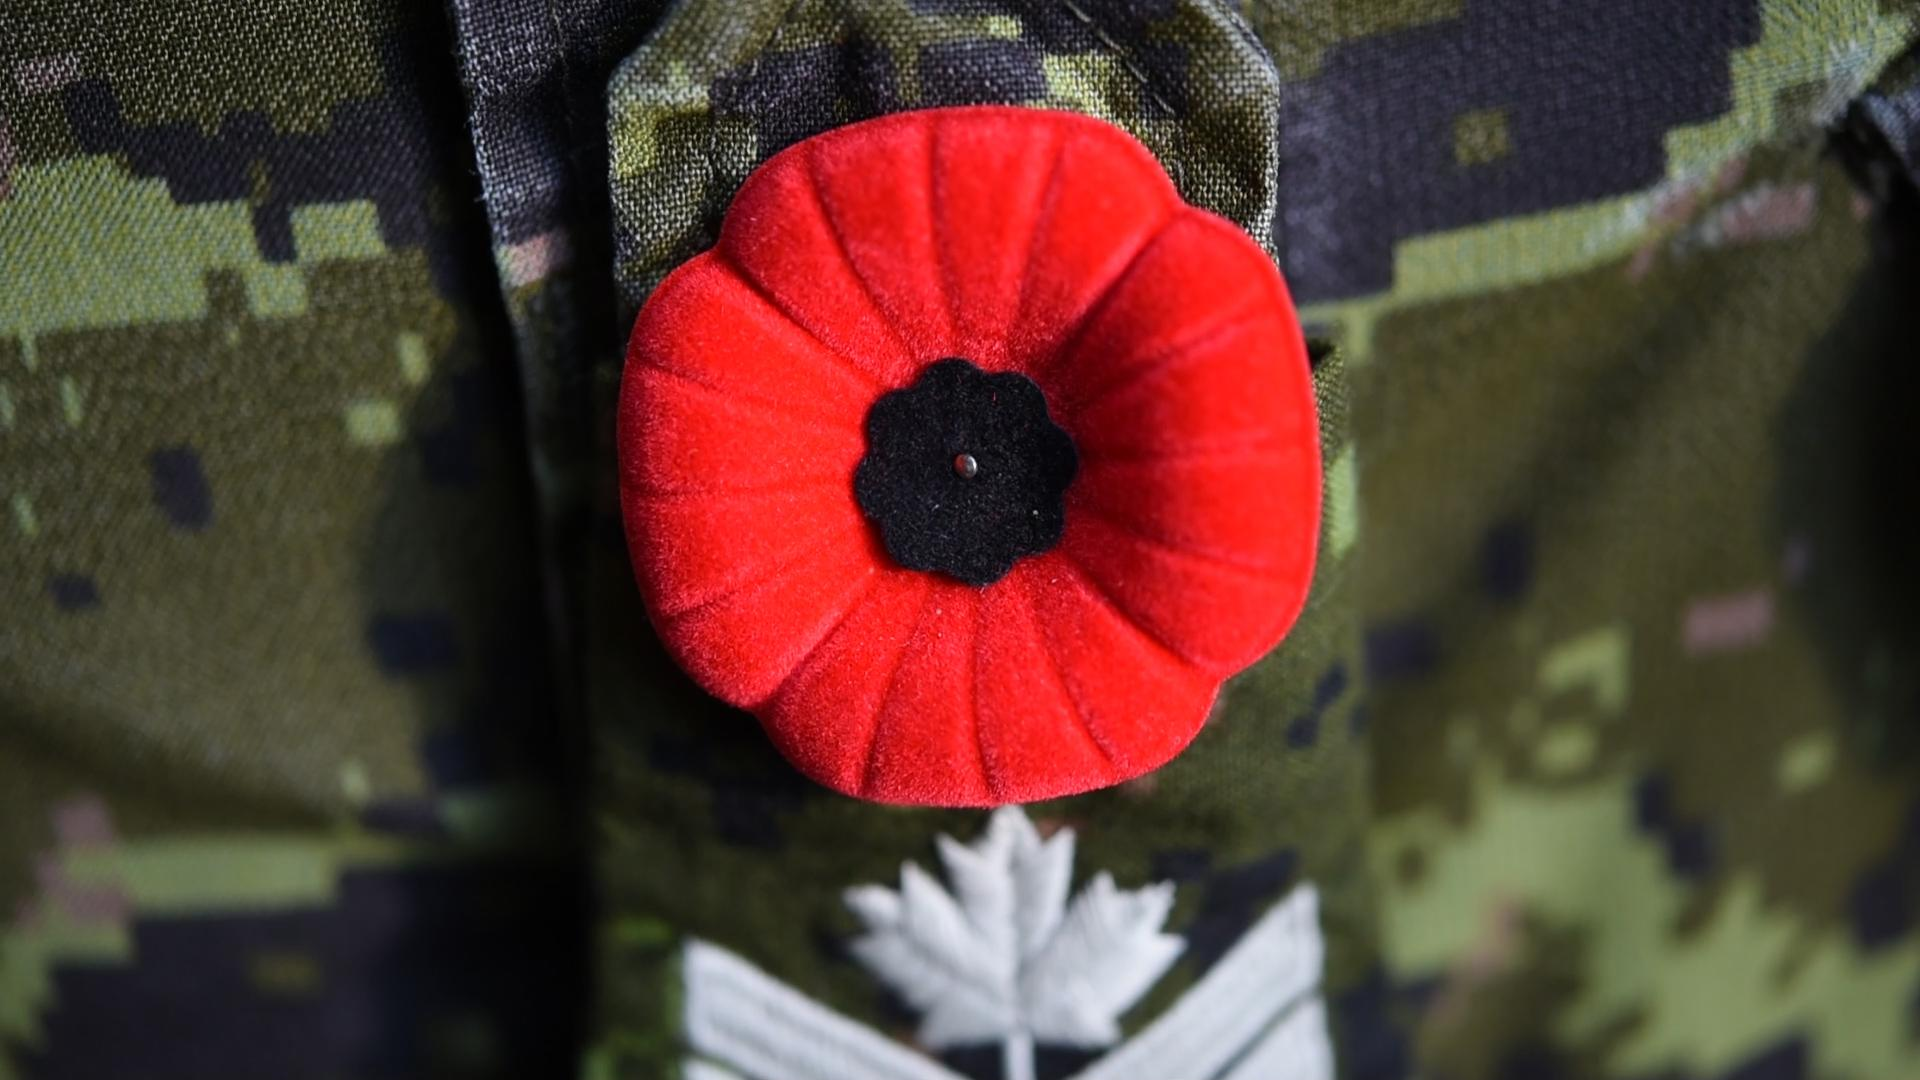 Army news national canadian army video poppy pinning a poppy pinned on a canadian army uniform mightylinksfo